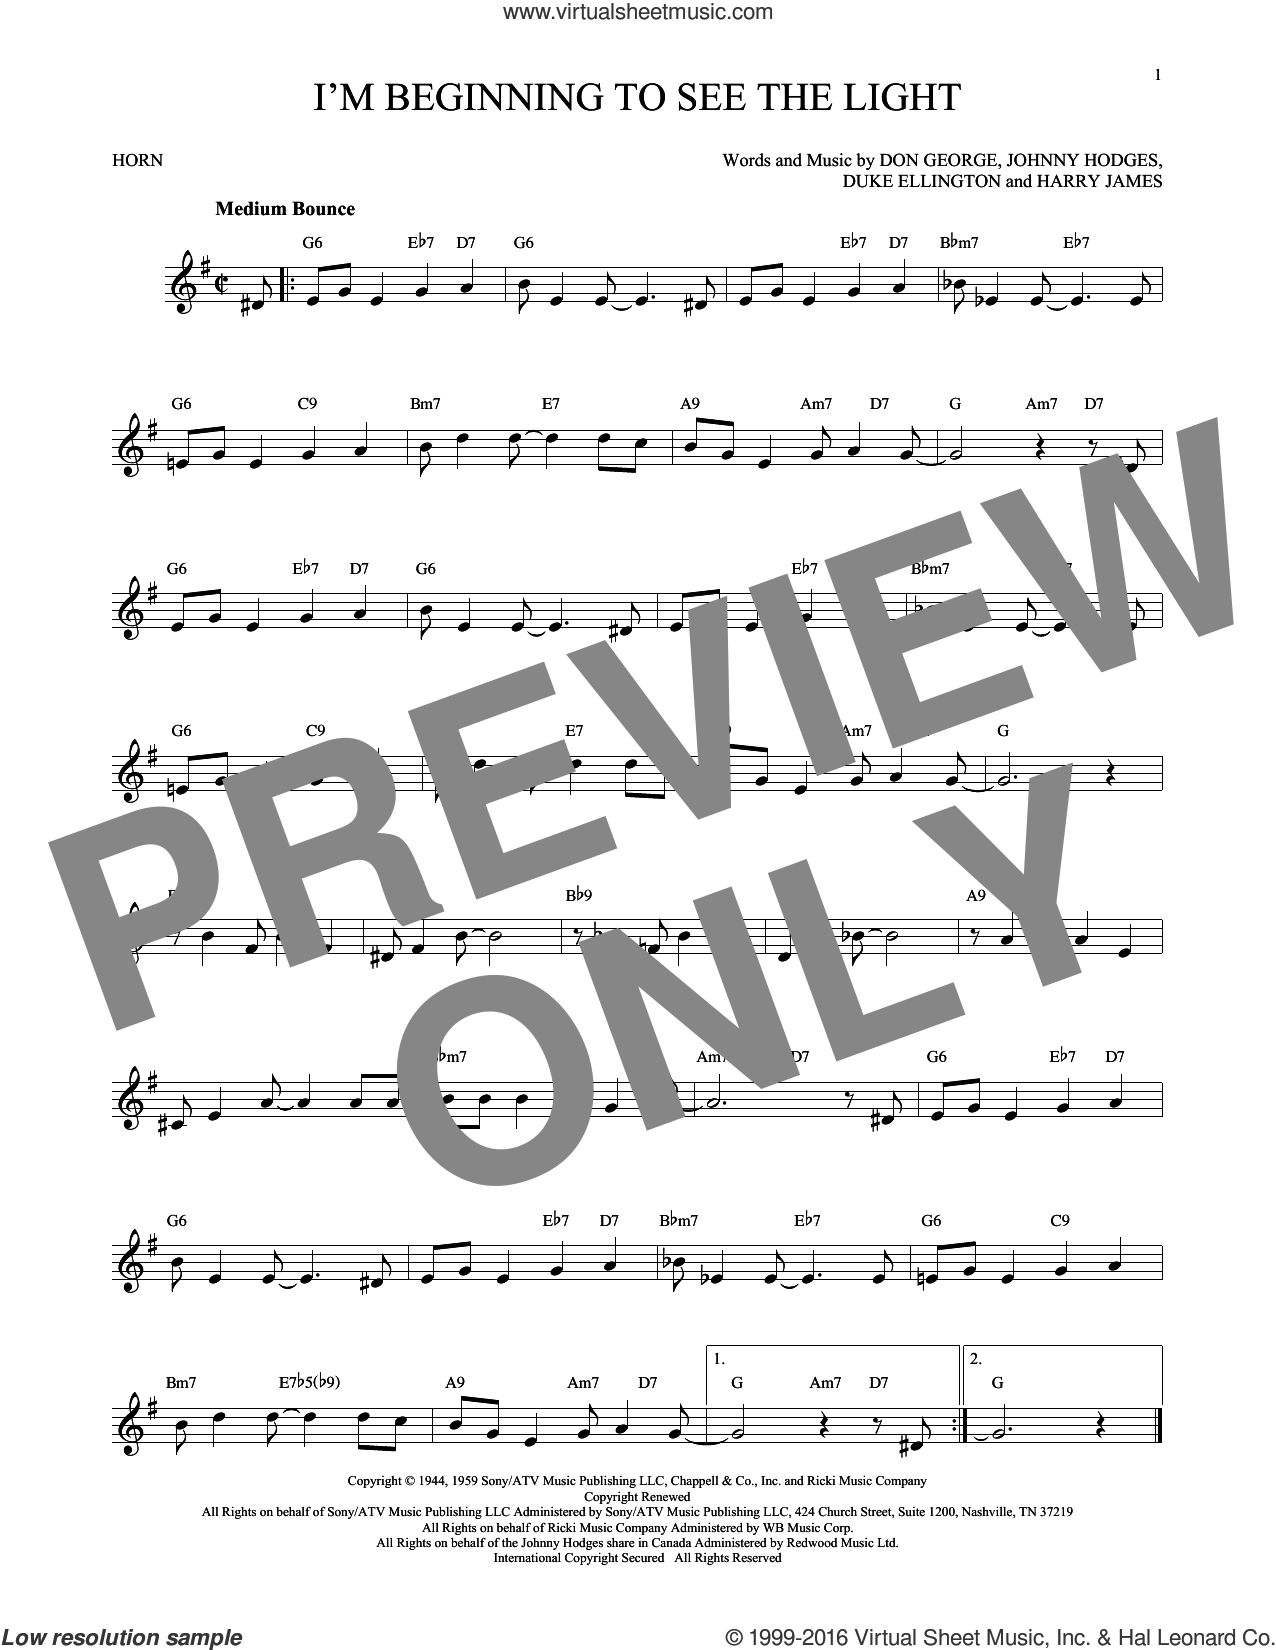 I'm Beginning To See The Light sheet music for horn solo by Duke Ellington, Don George, Harry James and Johnny Hodges, intermediate skill level